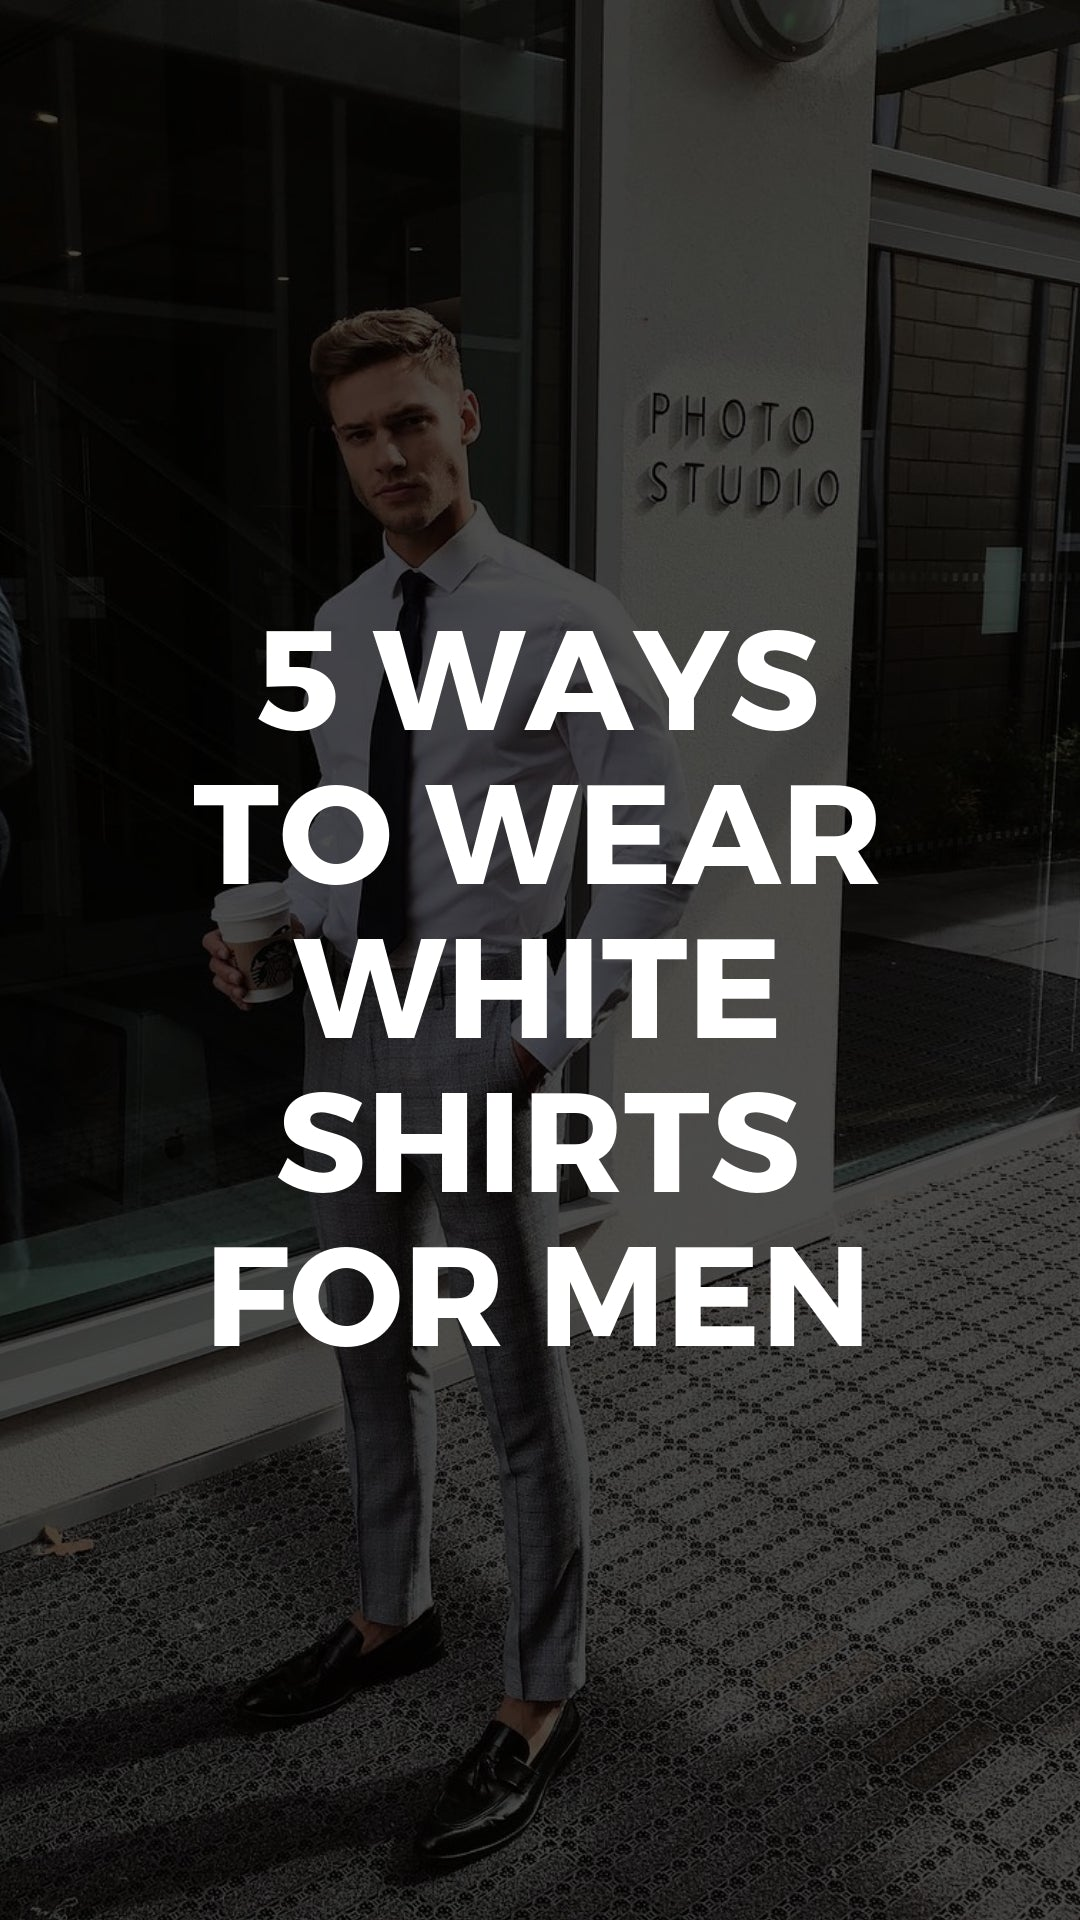 5 Cool Outfits With White Shirt For Men #white #shirt #outfits #mensfashion #streetstyle